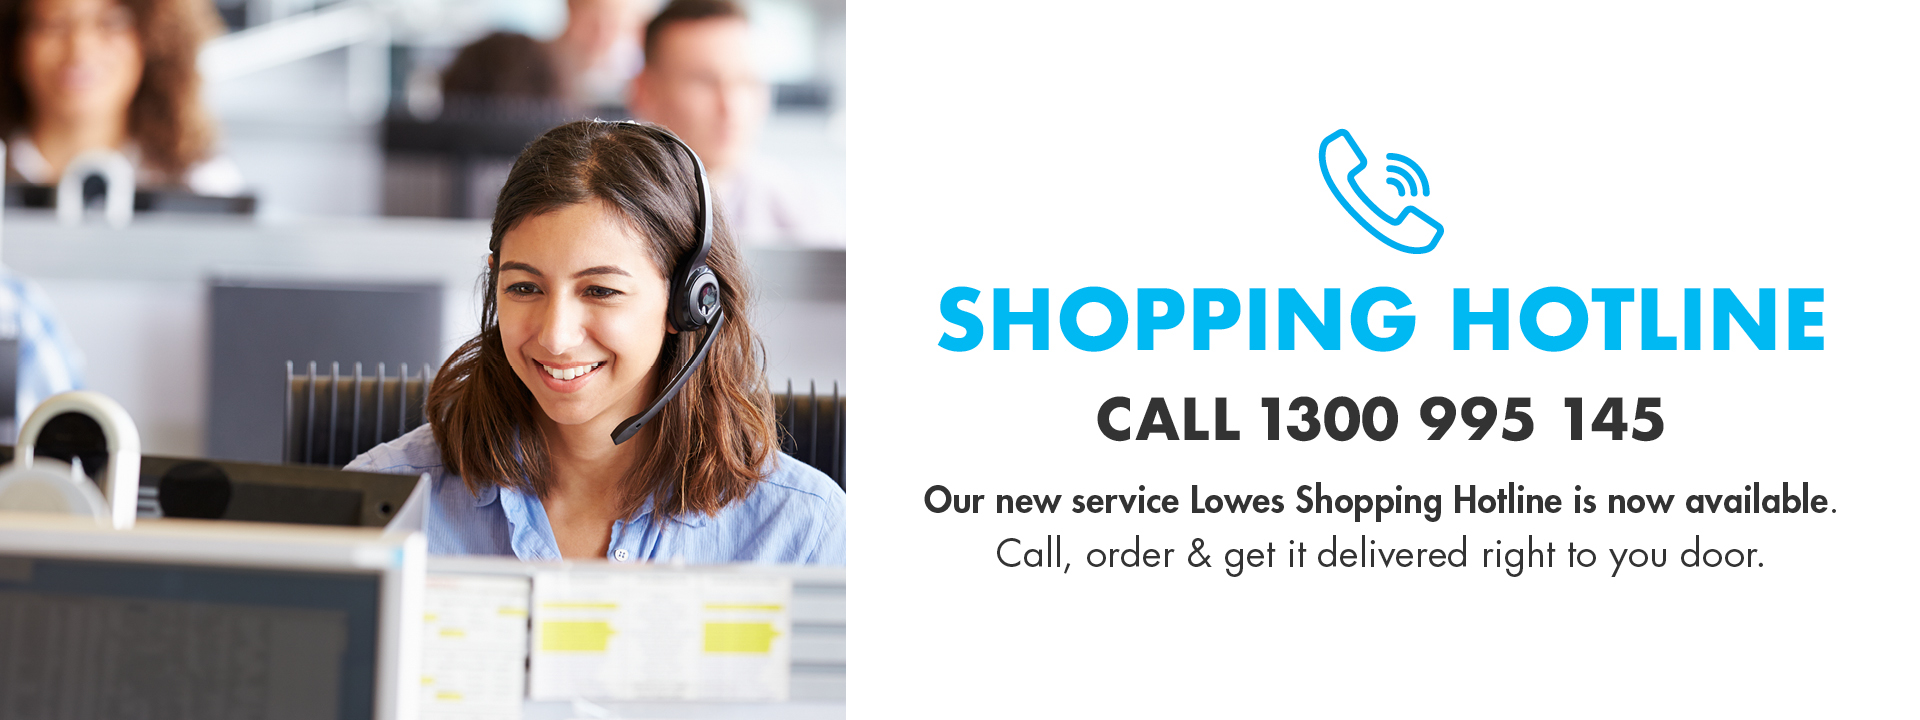 Shopping hotline